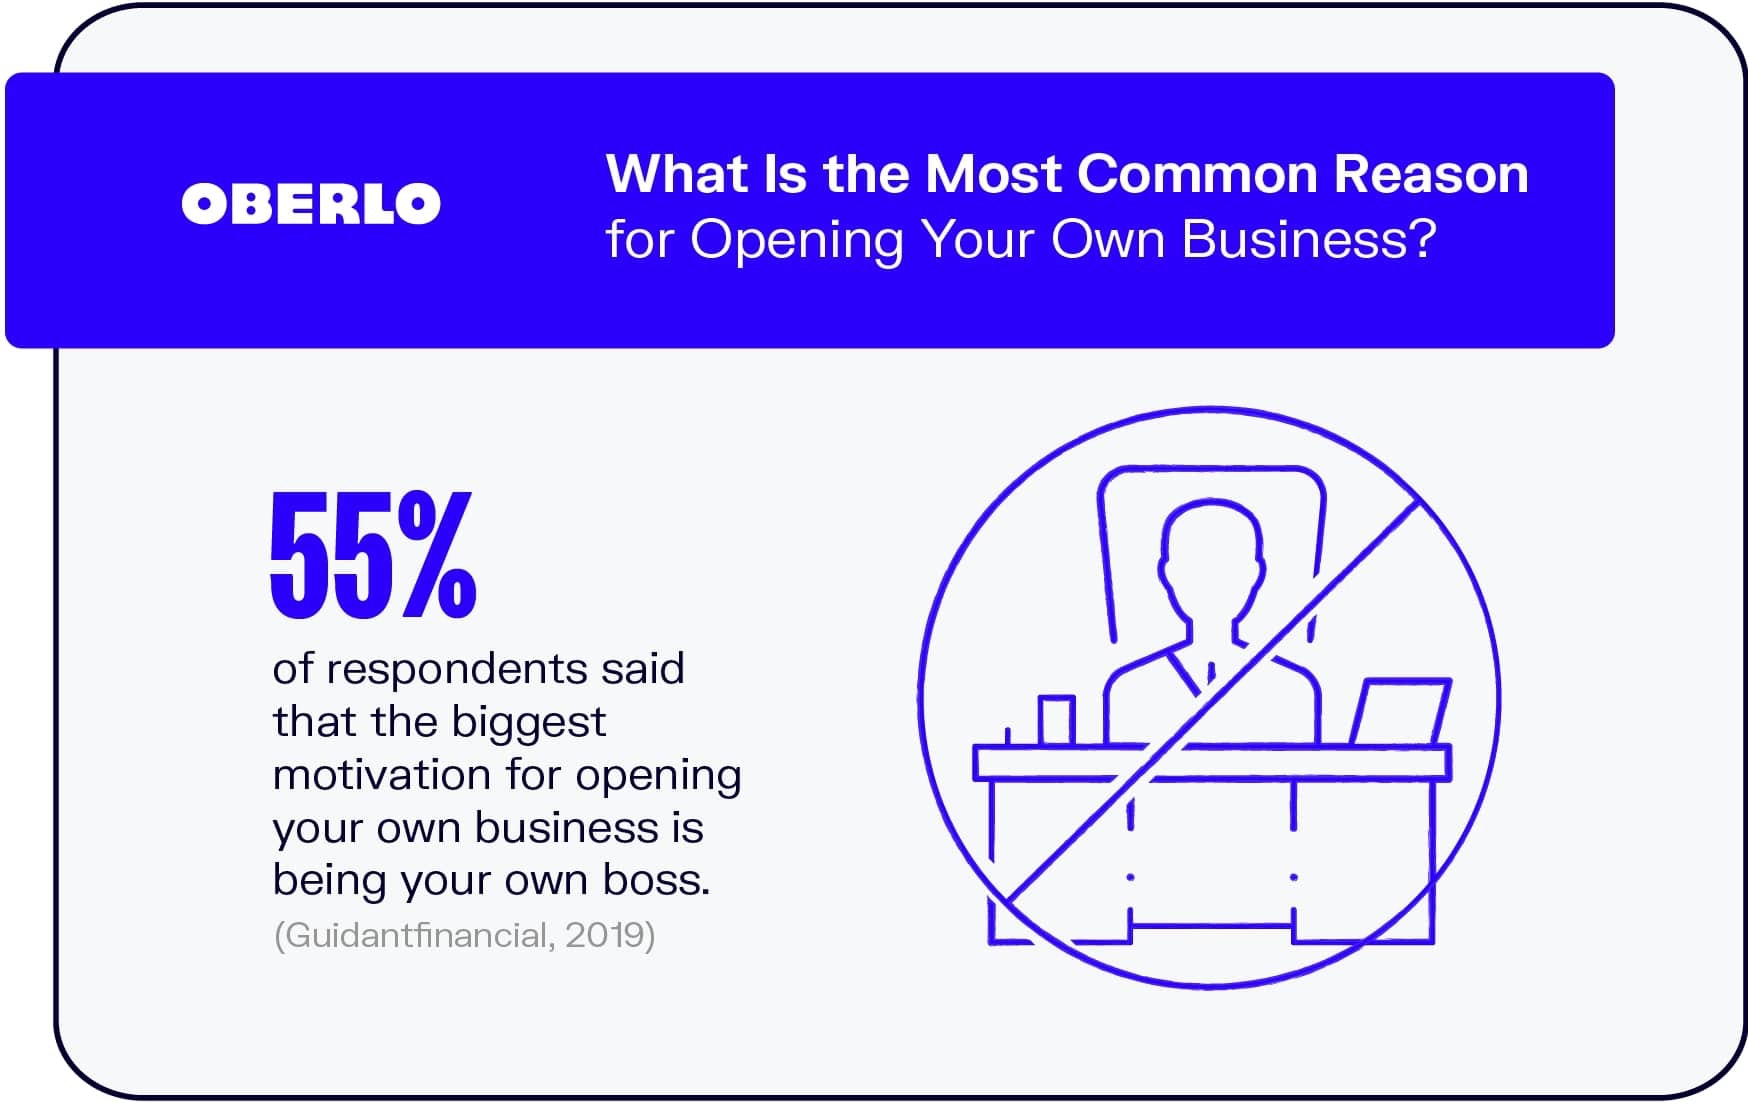 What Is the Most Common Reason for Opening Your Own Business?